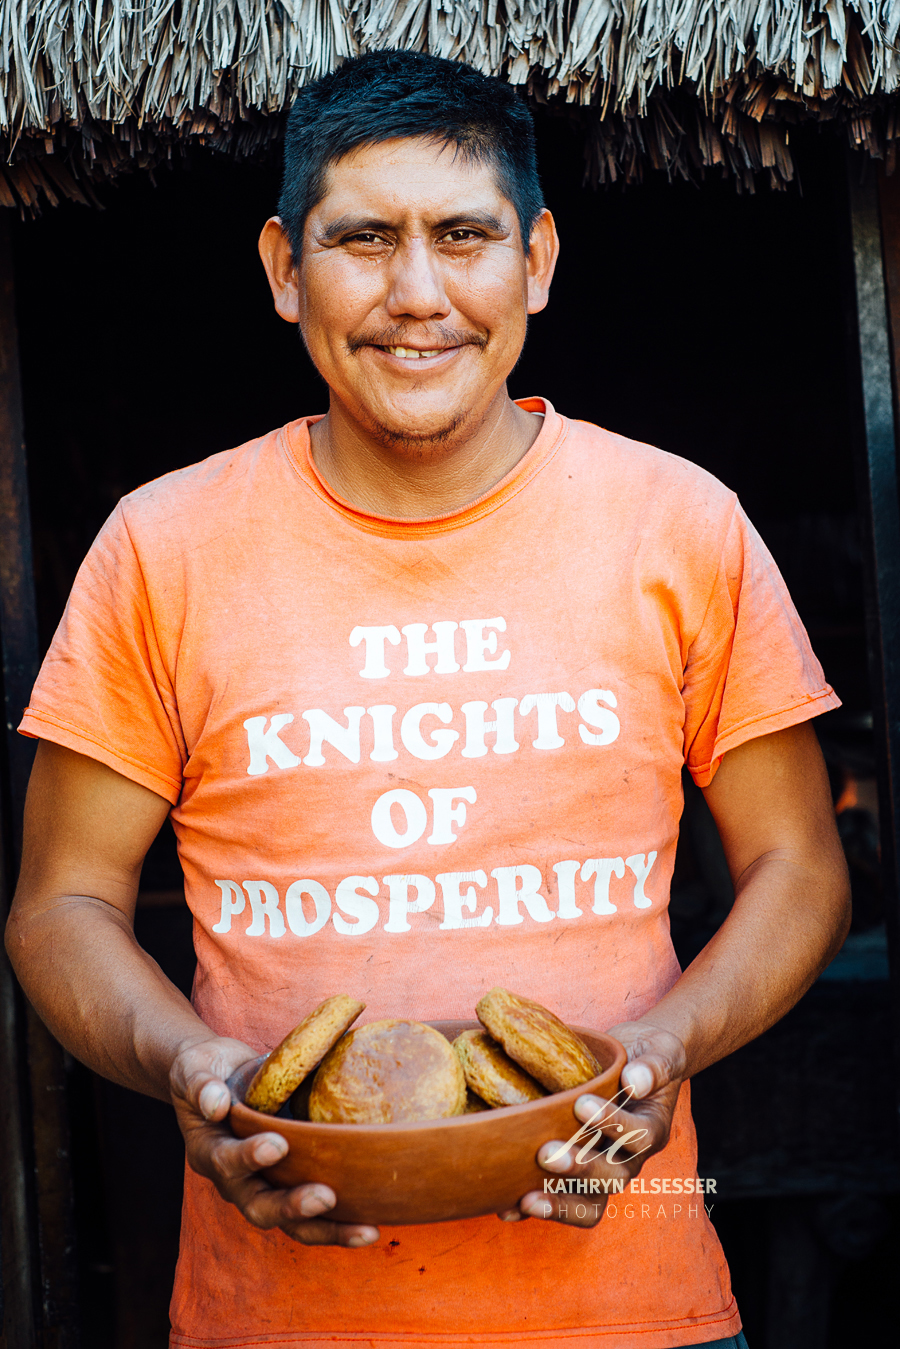 Proud chef in the village of La Candelaria in Baja, Mexico